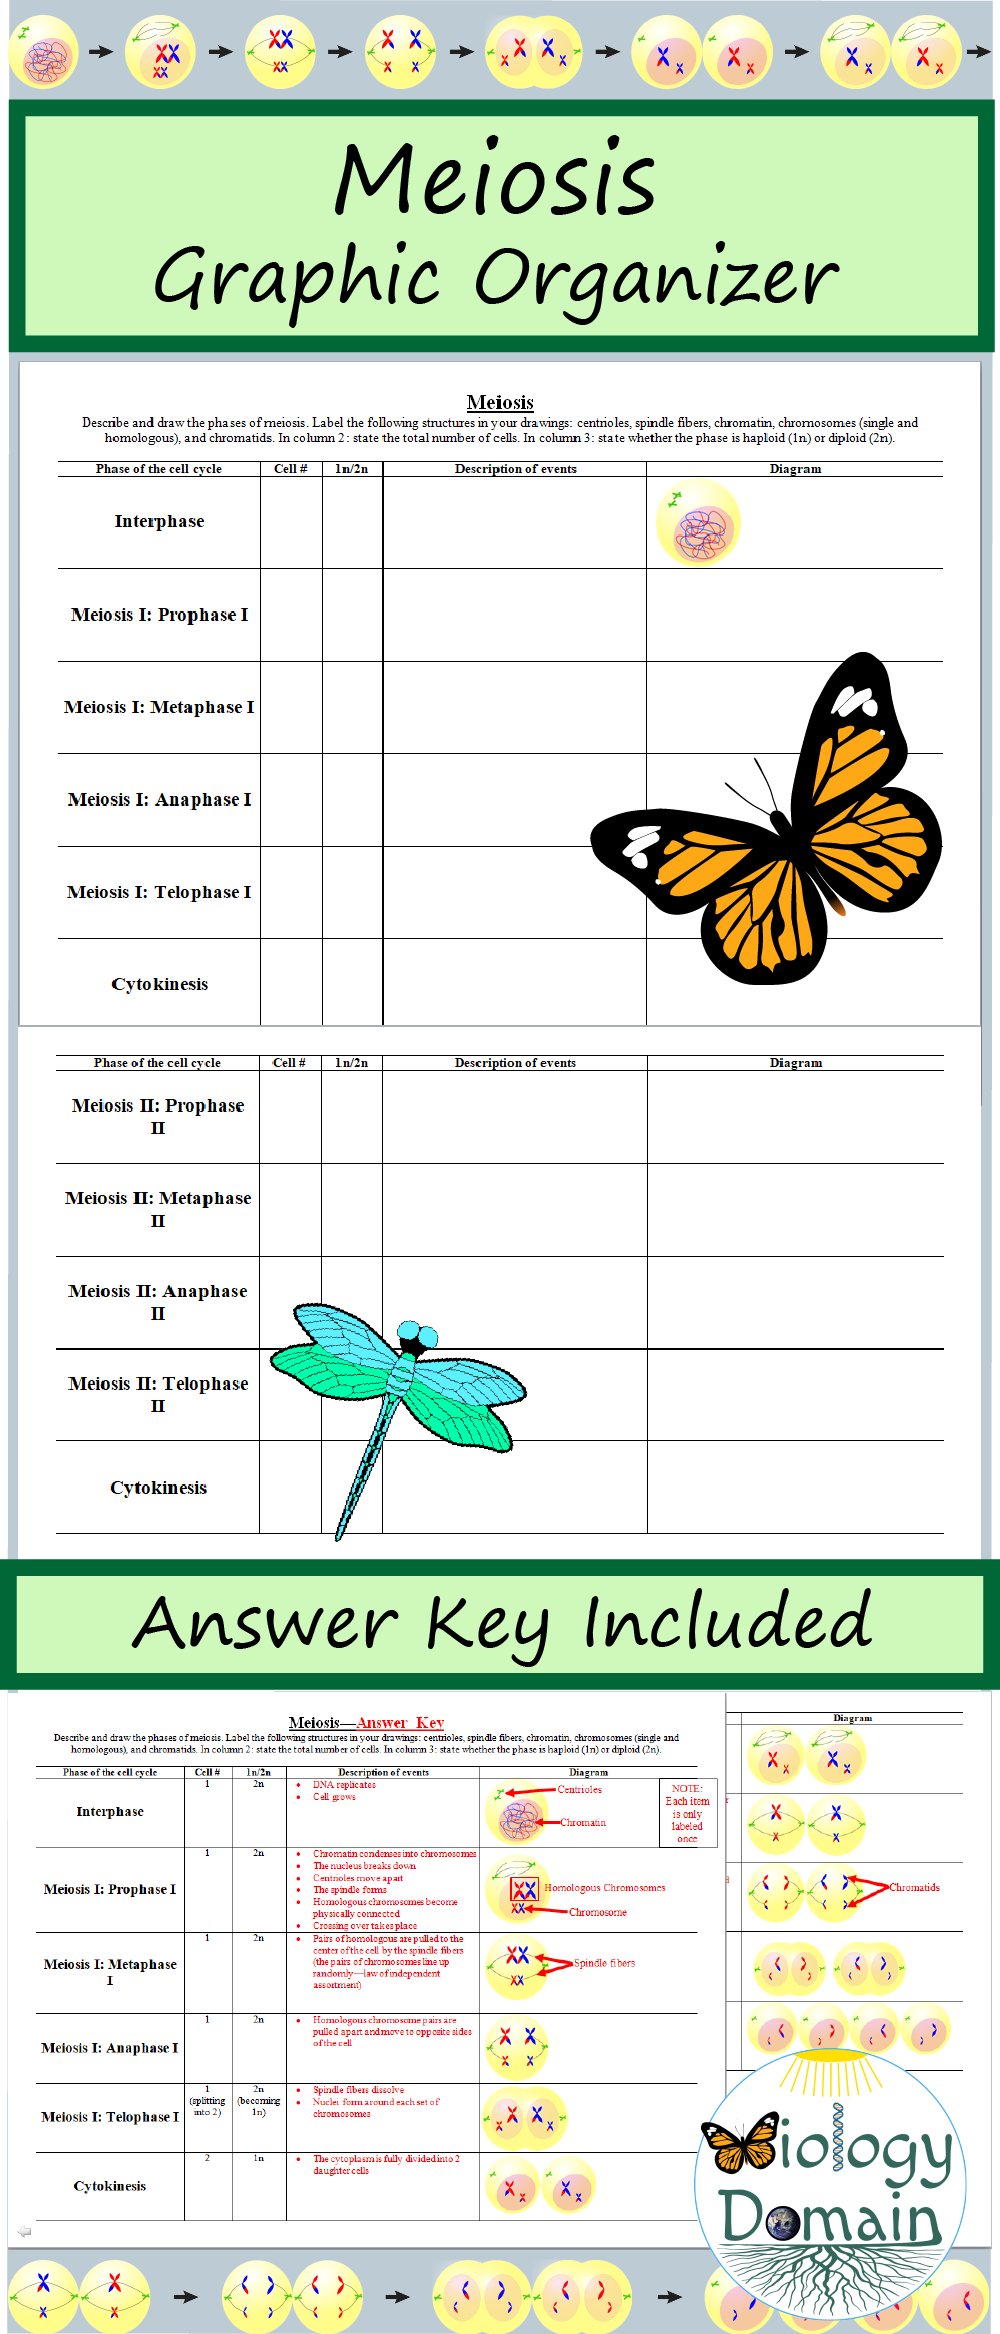 Pin By Melissa Wright On Teach Something Biology Lesson Plans Teaching Biology Biology Classroom